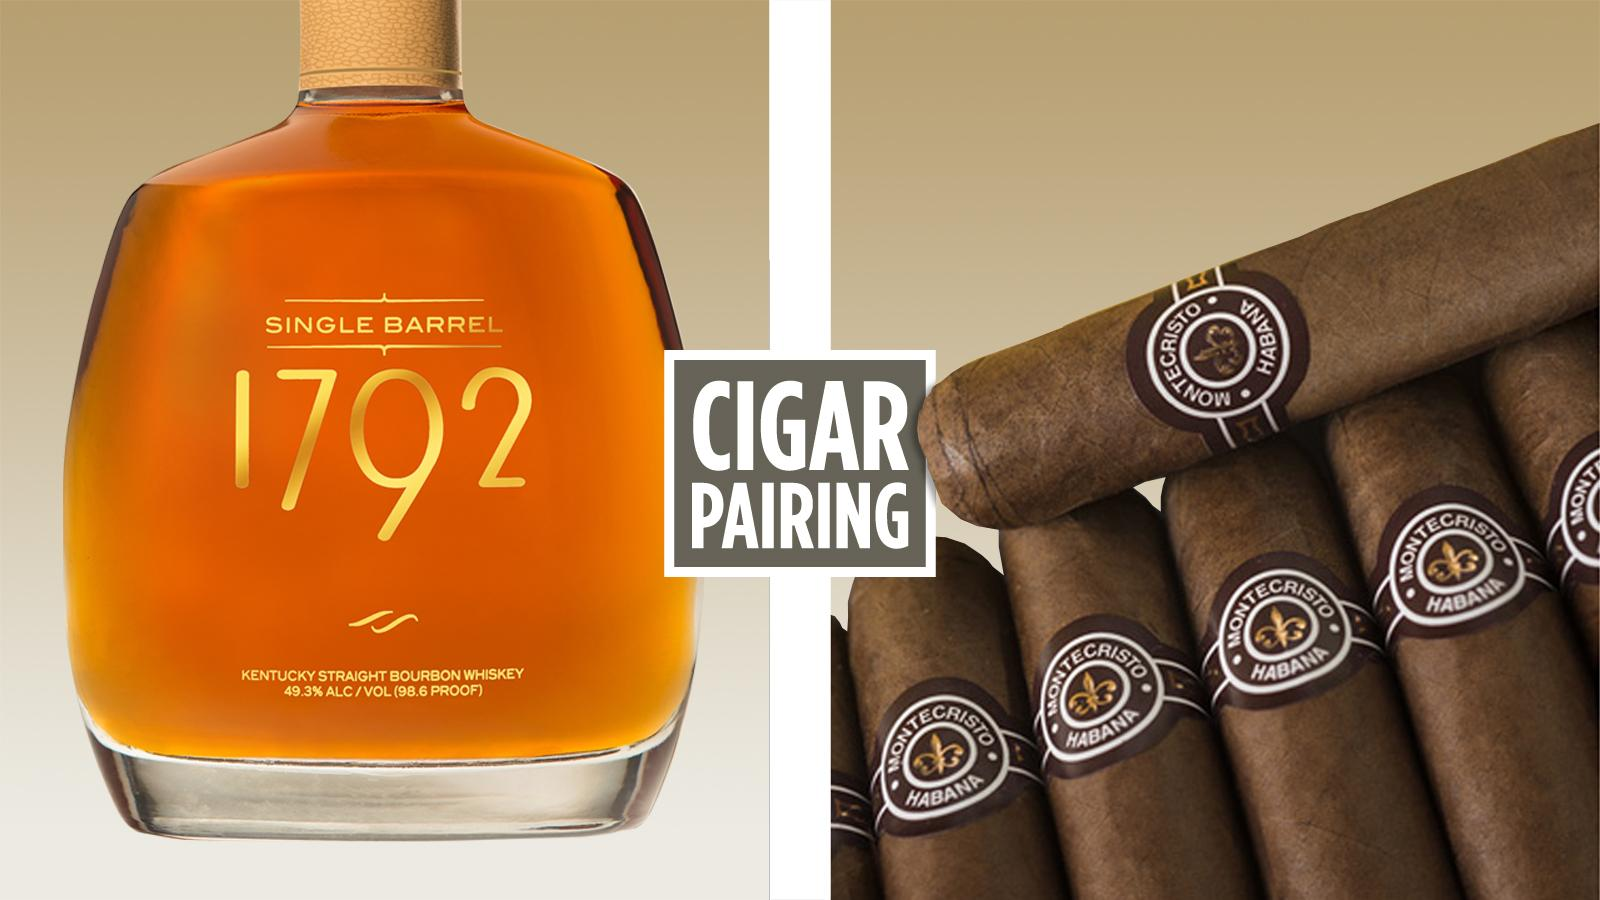 Cigar Pairing: Barton 1792 Single Barrel Bourbon